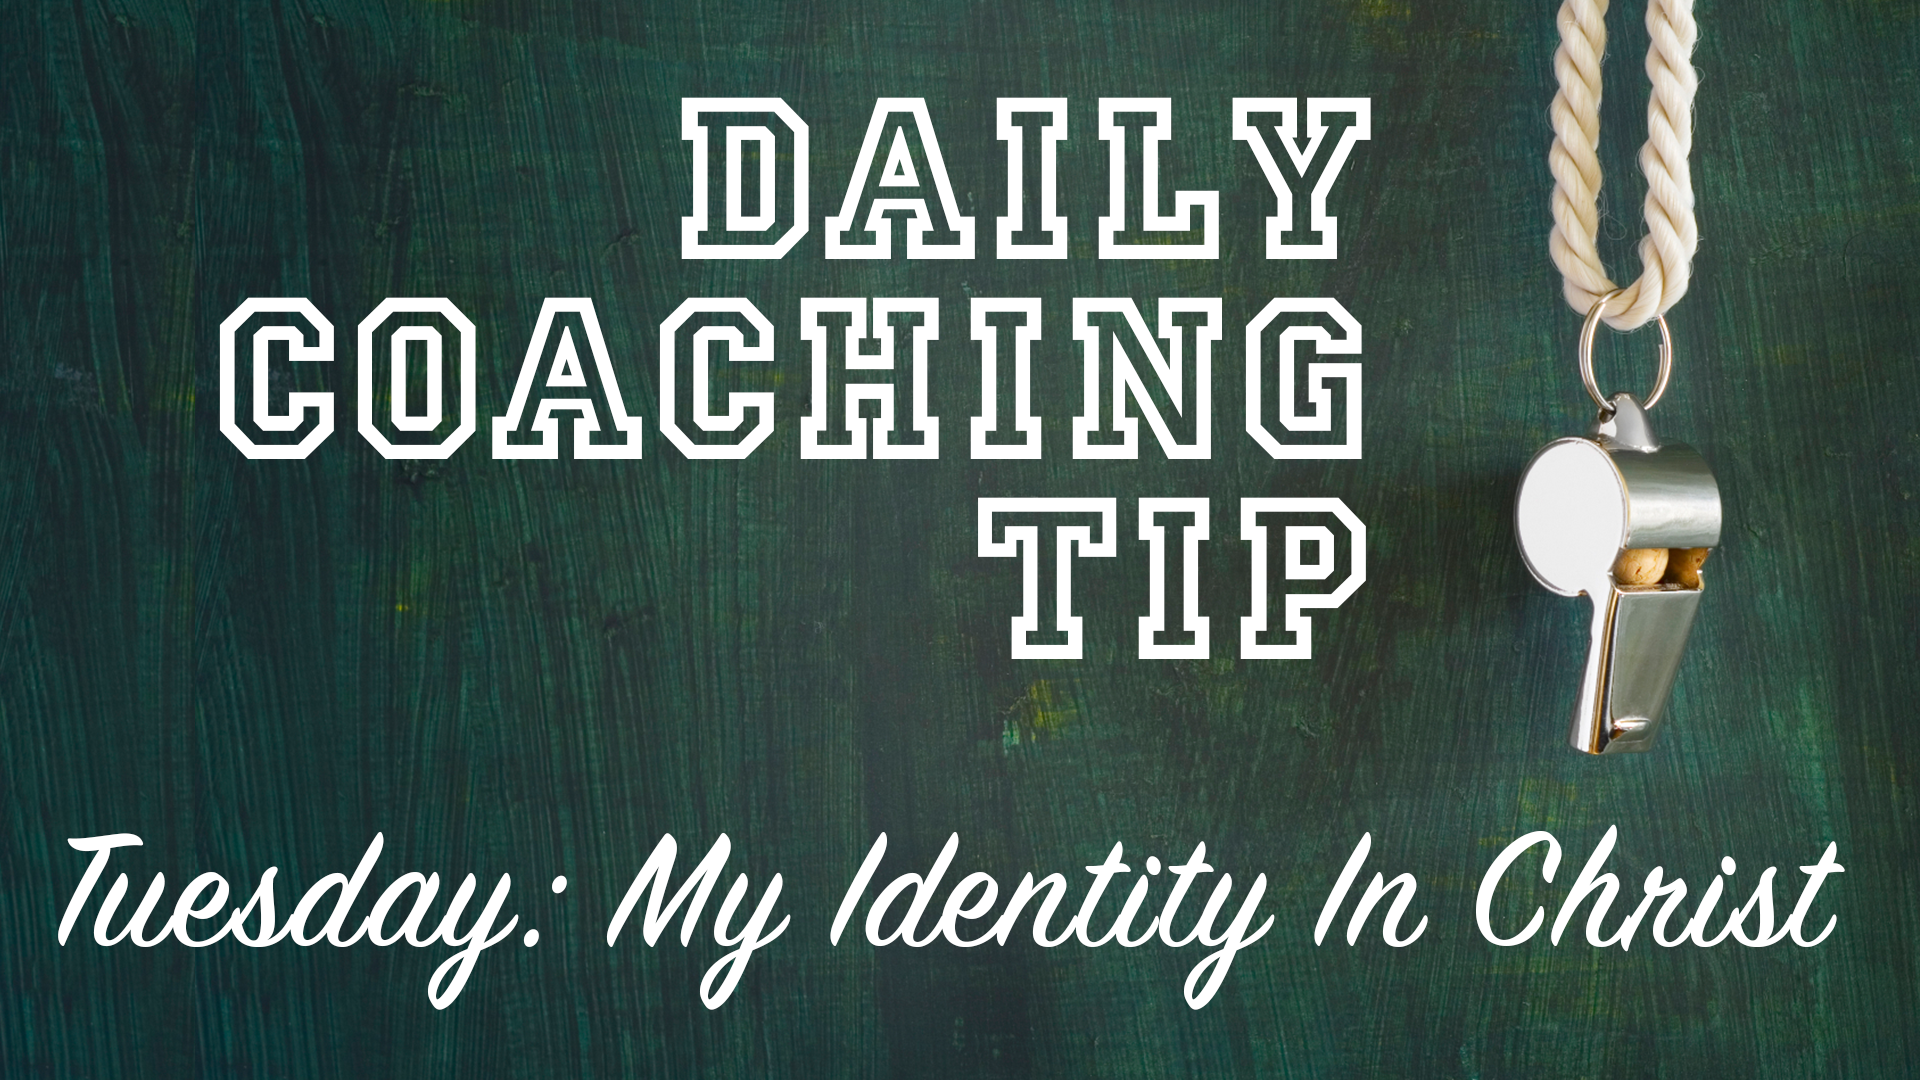 Daily Coaching Tip, Tuesday, May 24, 2016